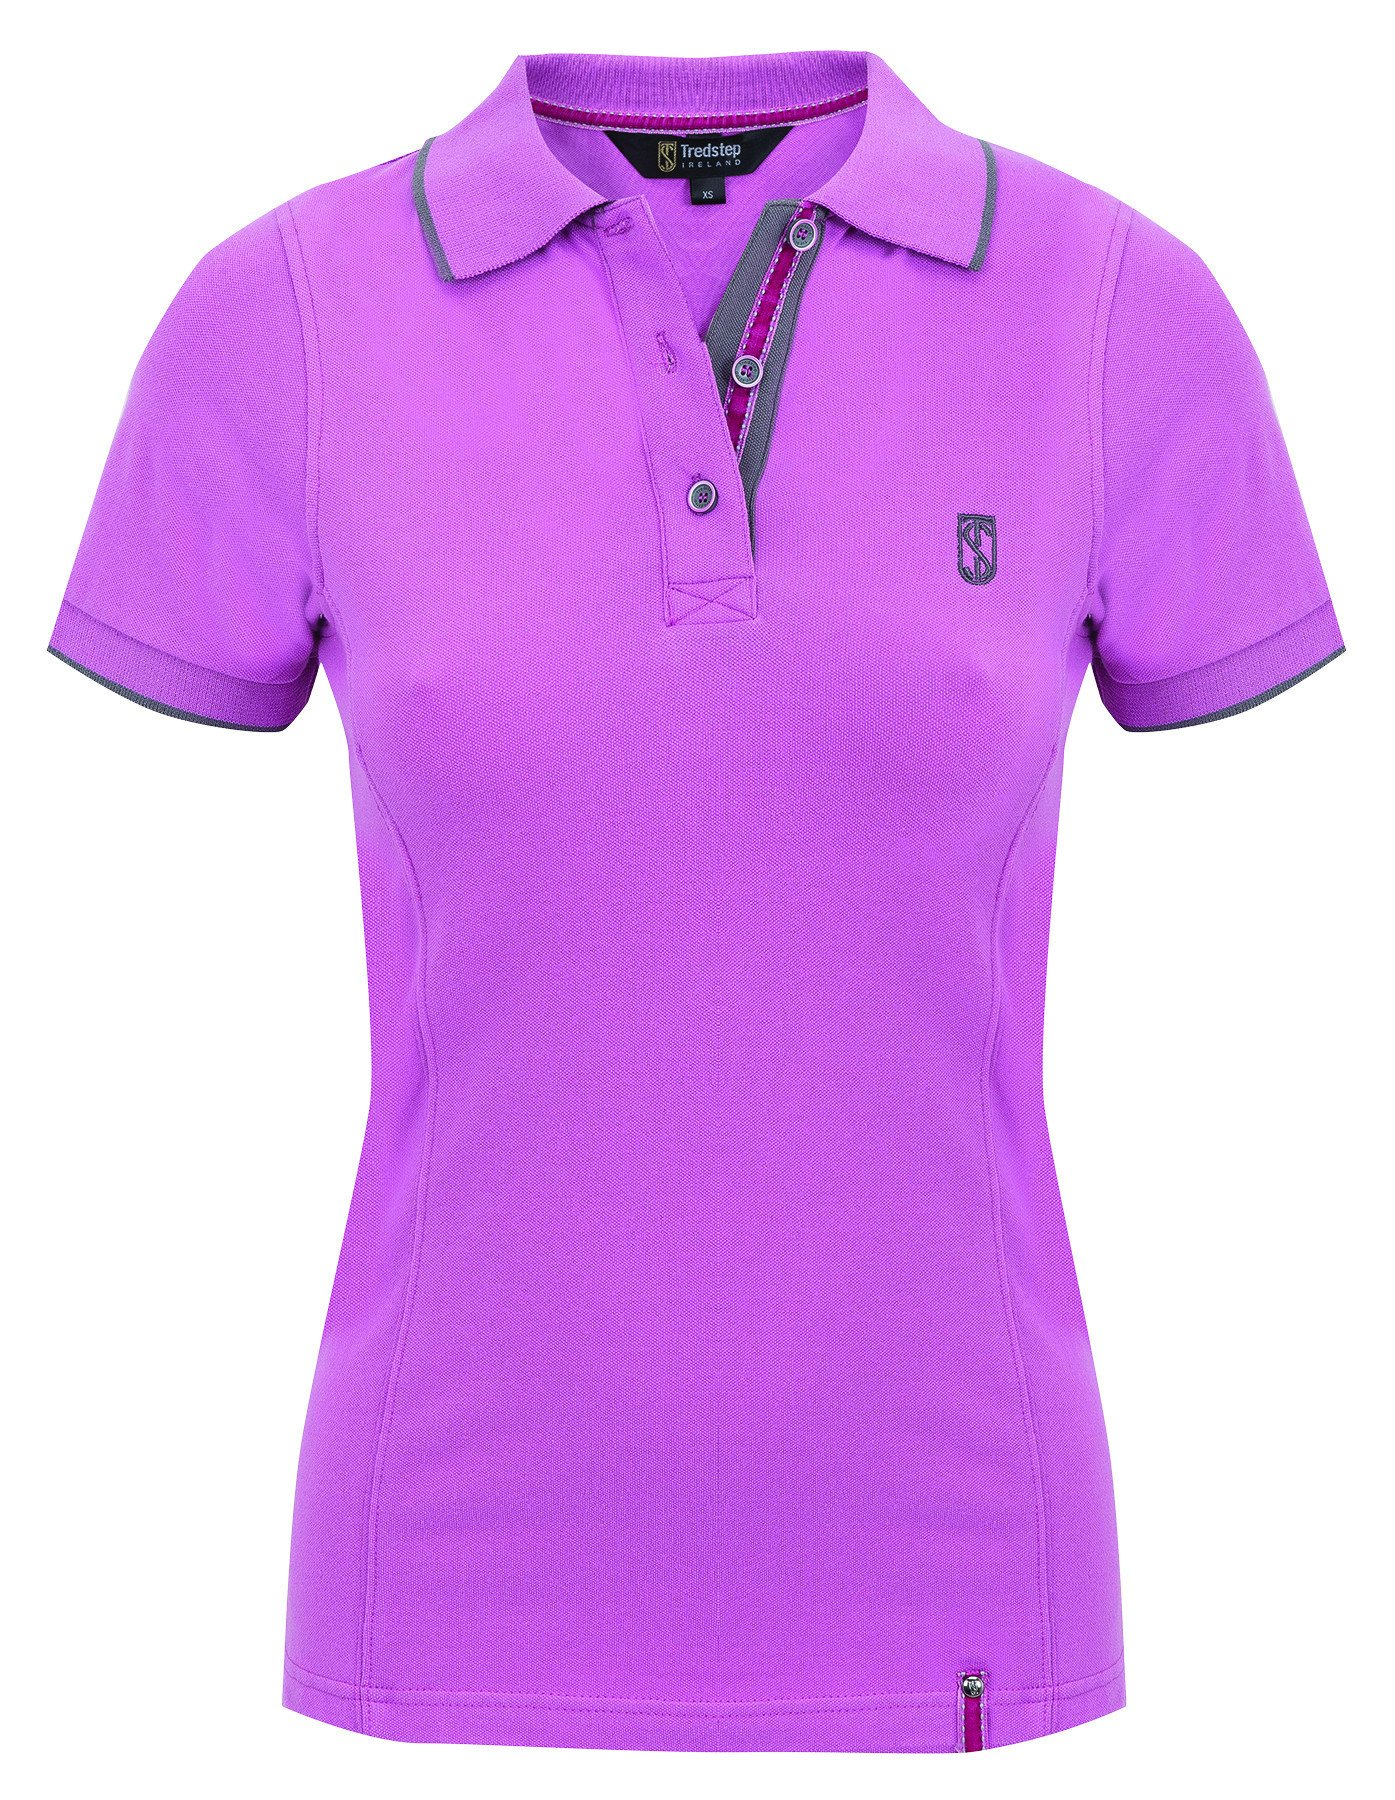 Tredstep - Ladies Polo Shirt